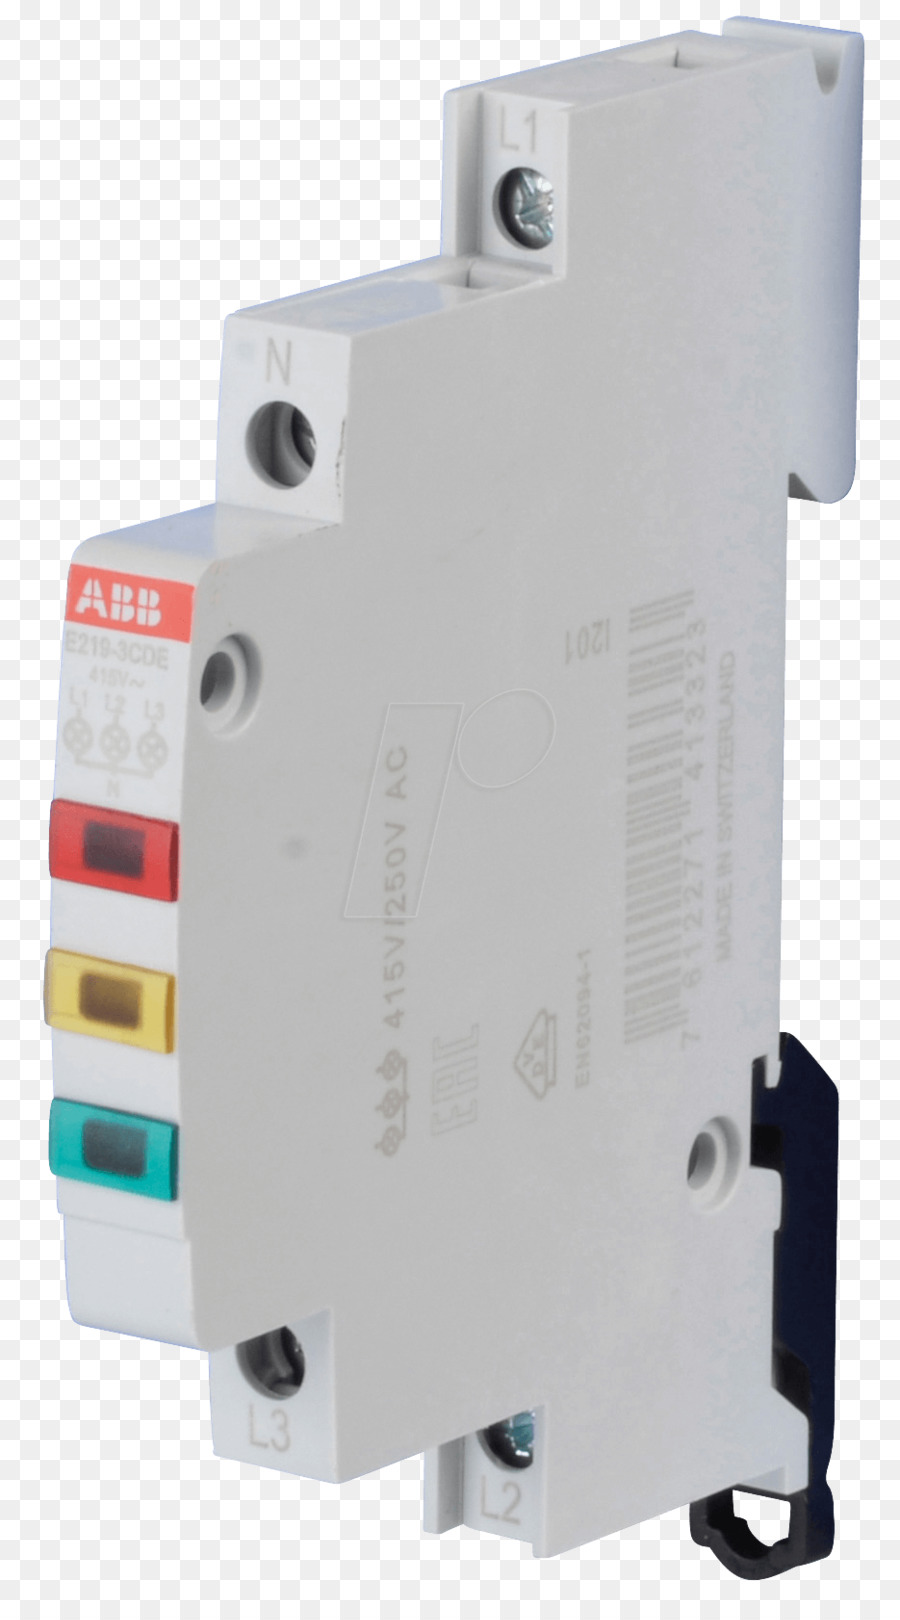 hight resolution of abb indicator light for distribution board e219 3 abb group electrical switches din rail